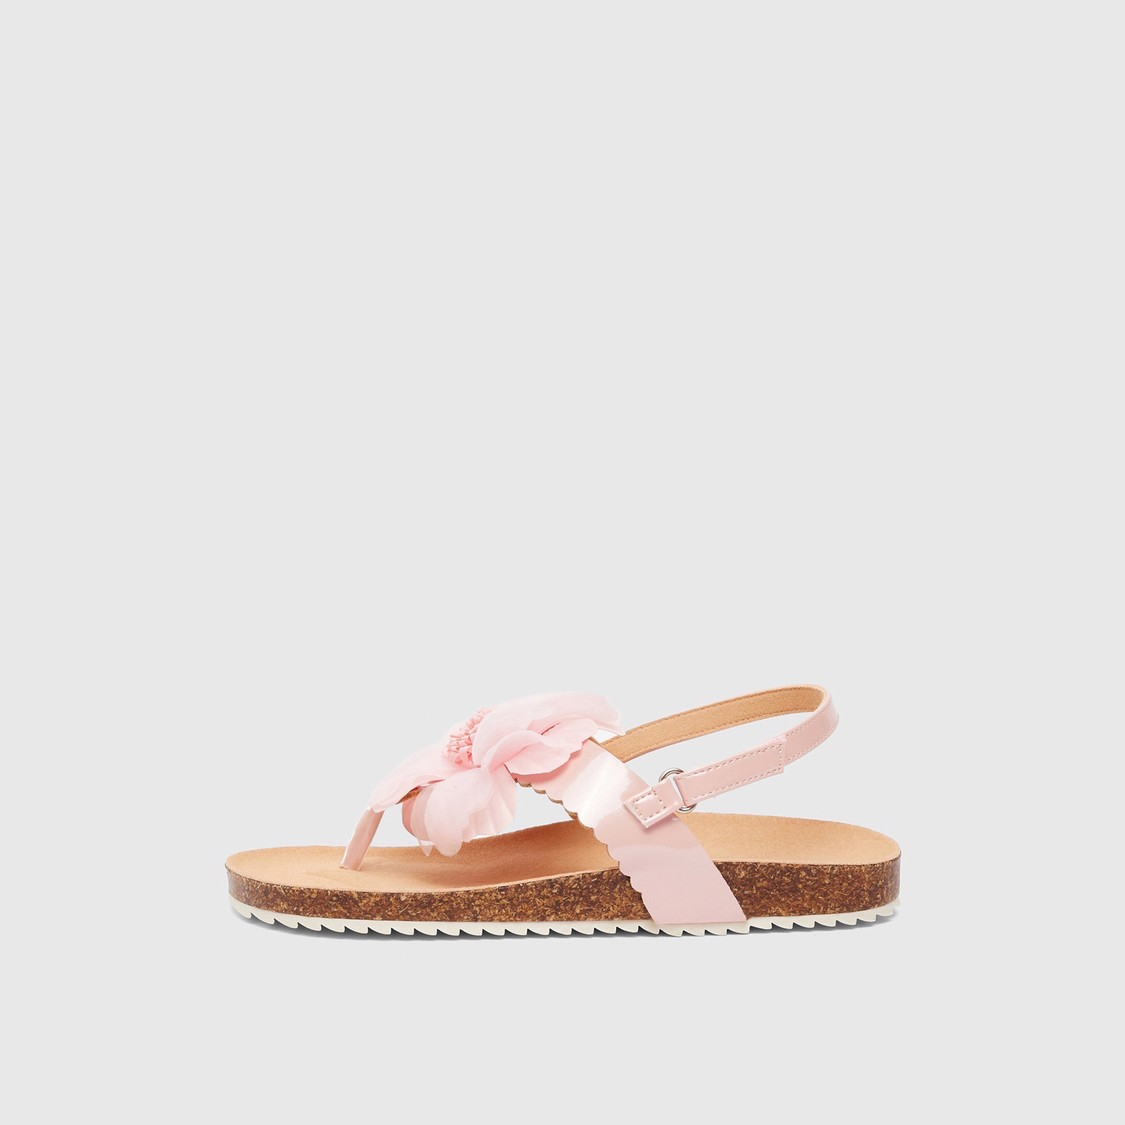 Floral Applique Detail Back Strap Sandals with Hook and Loop Closure